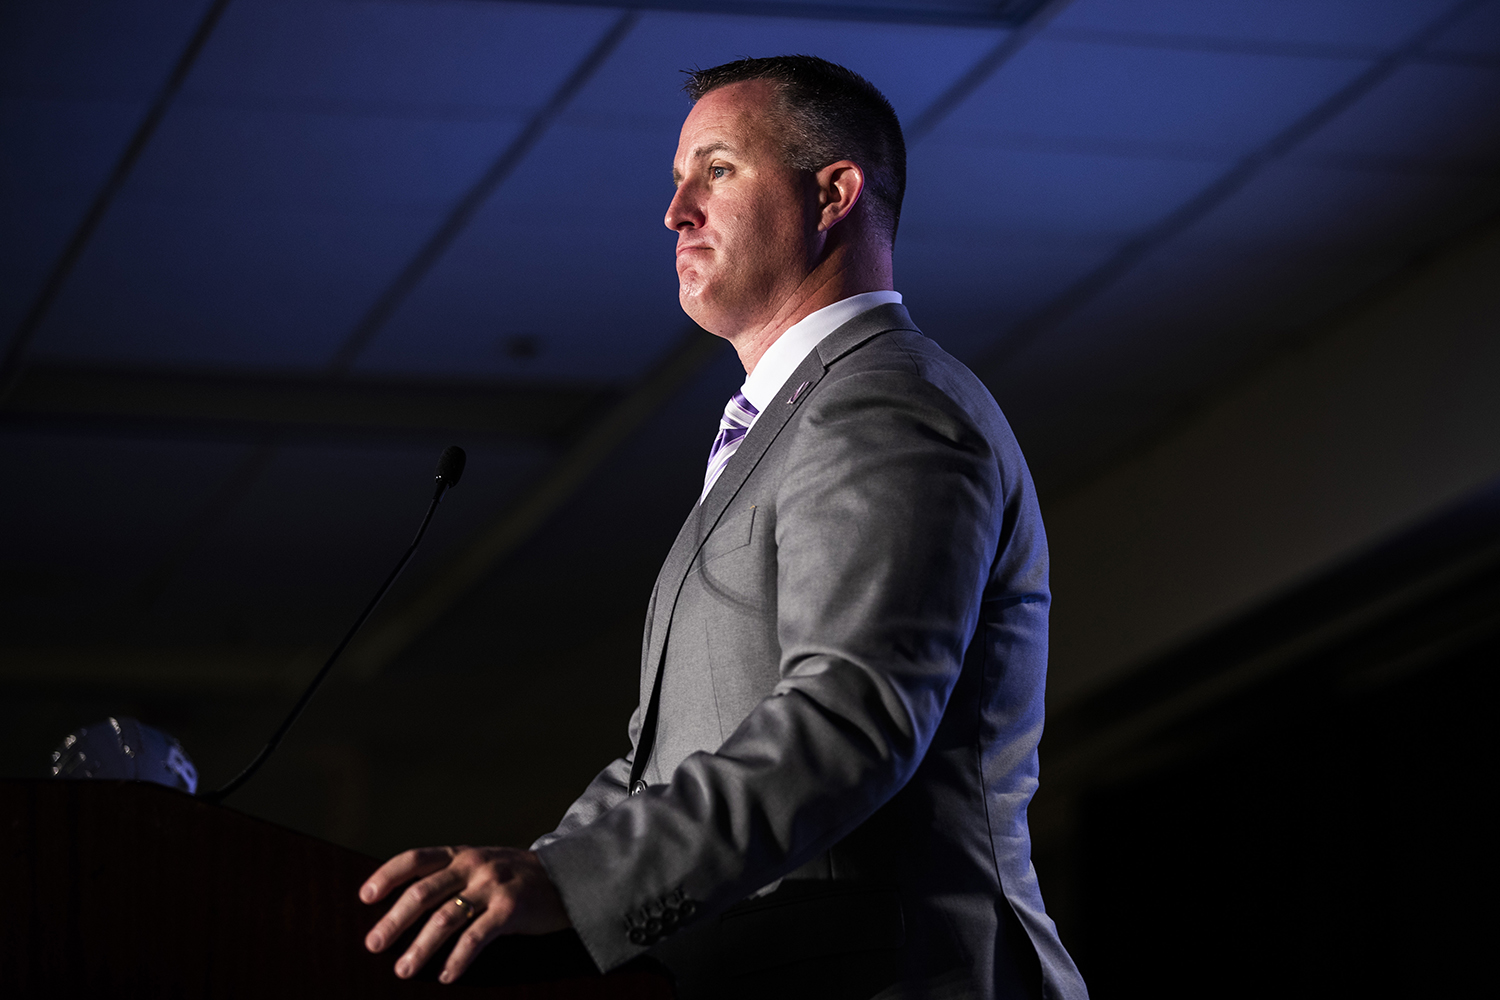 Highlights from Day 2 of Big Ten media days - The Daily Iowan